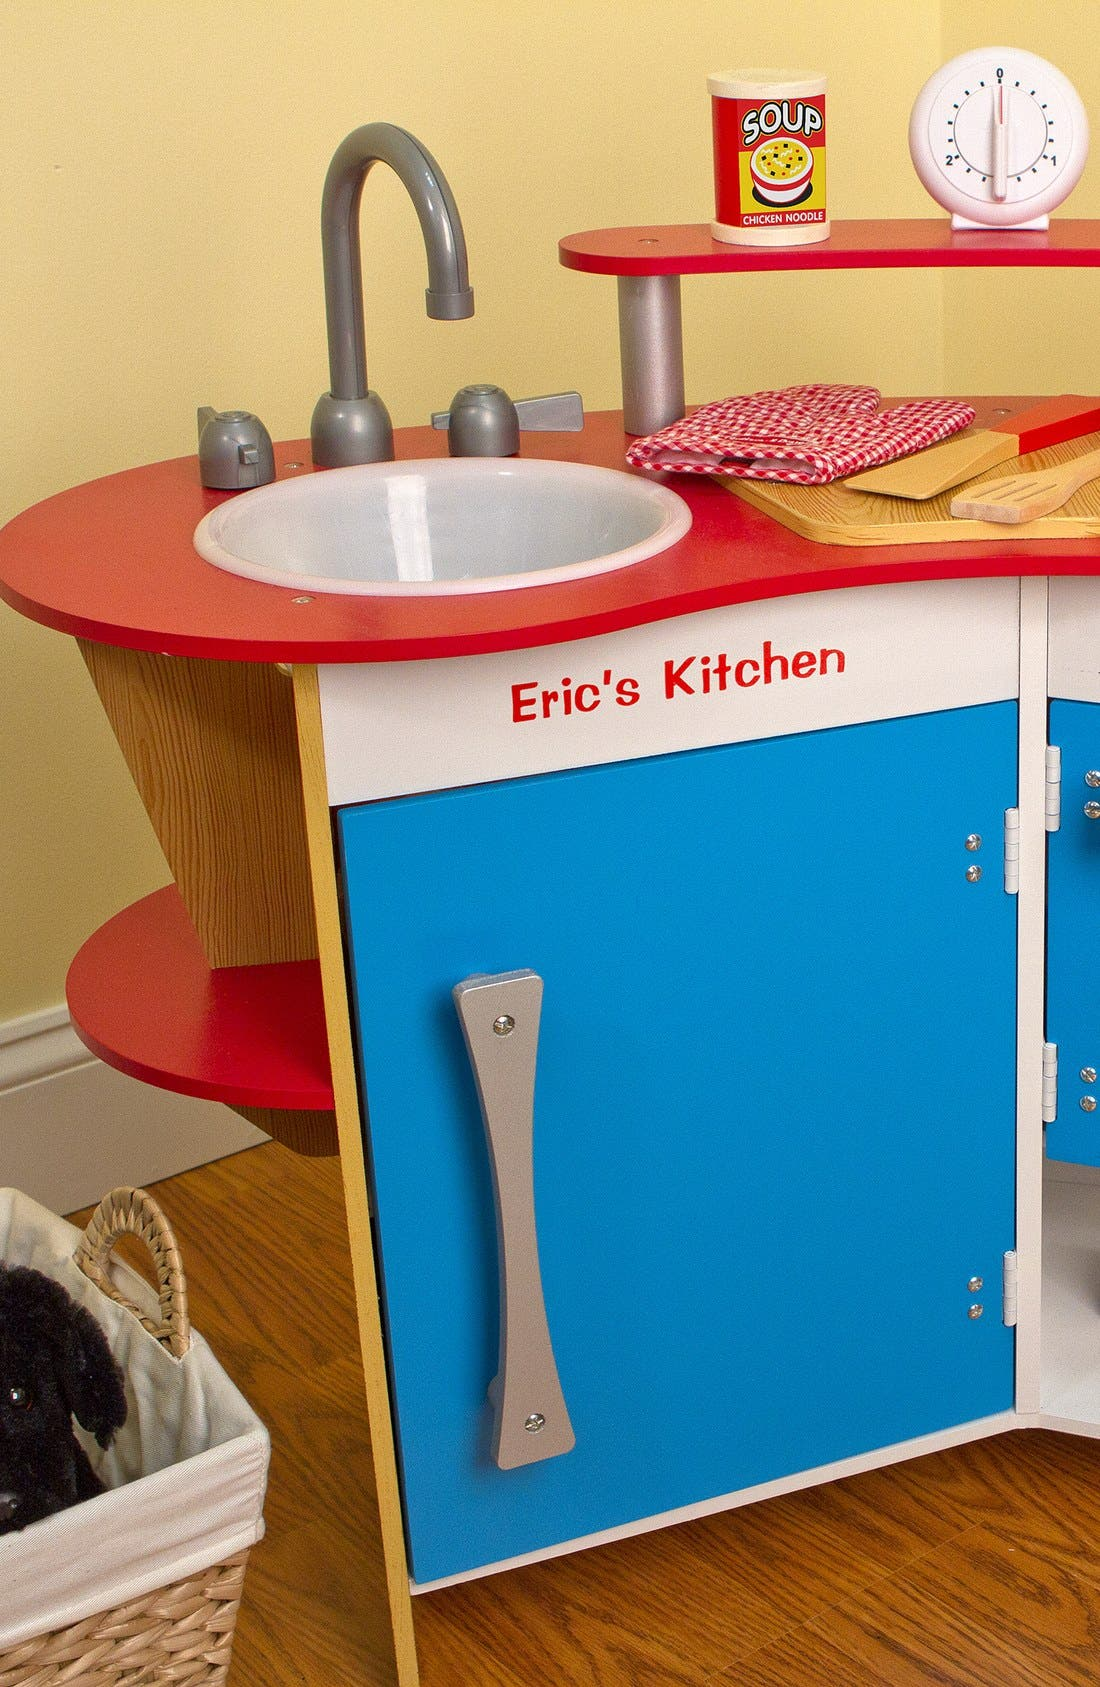 MELISSA & DOUG 'Cook's Corner' Personalized Kitchen